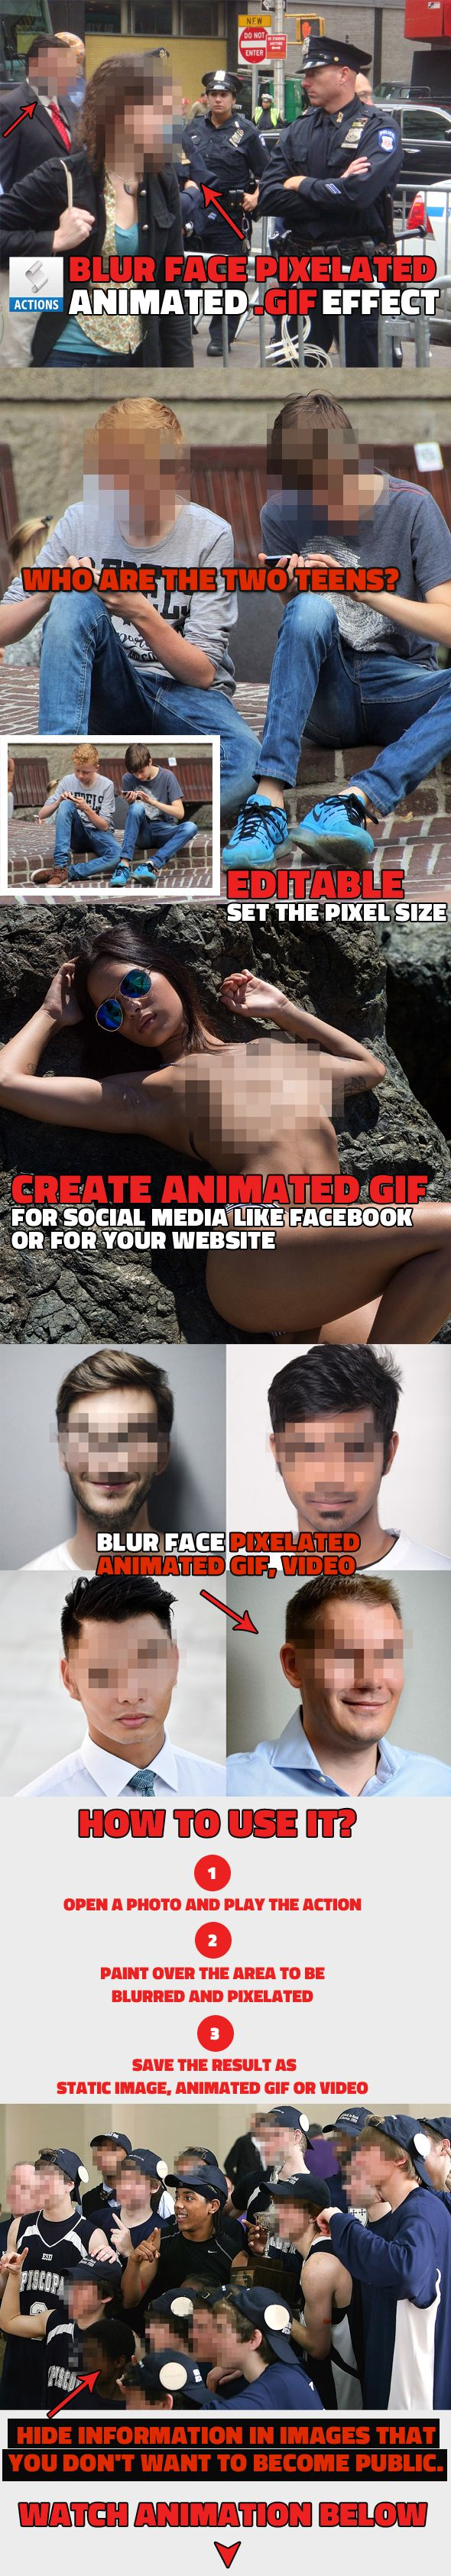 Animated Blur Face in Photo with Pixelated Effect Photoshop Action